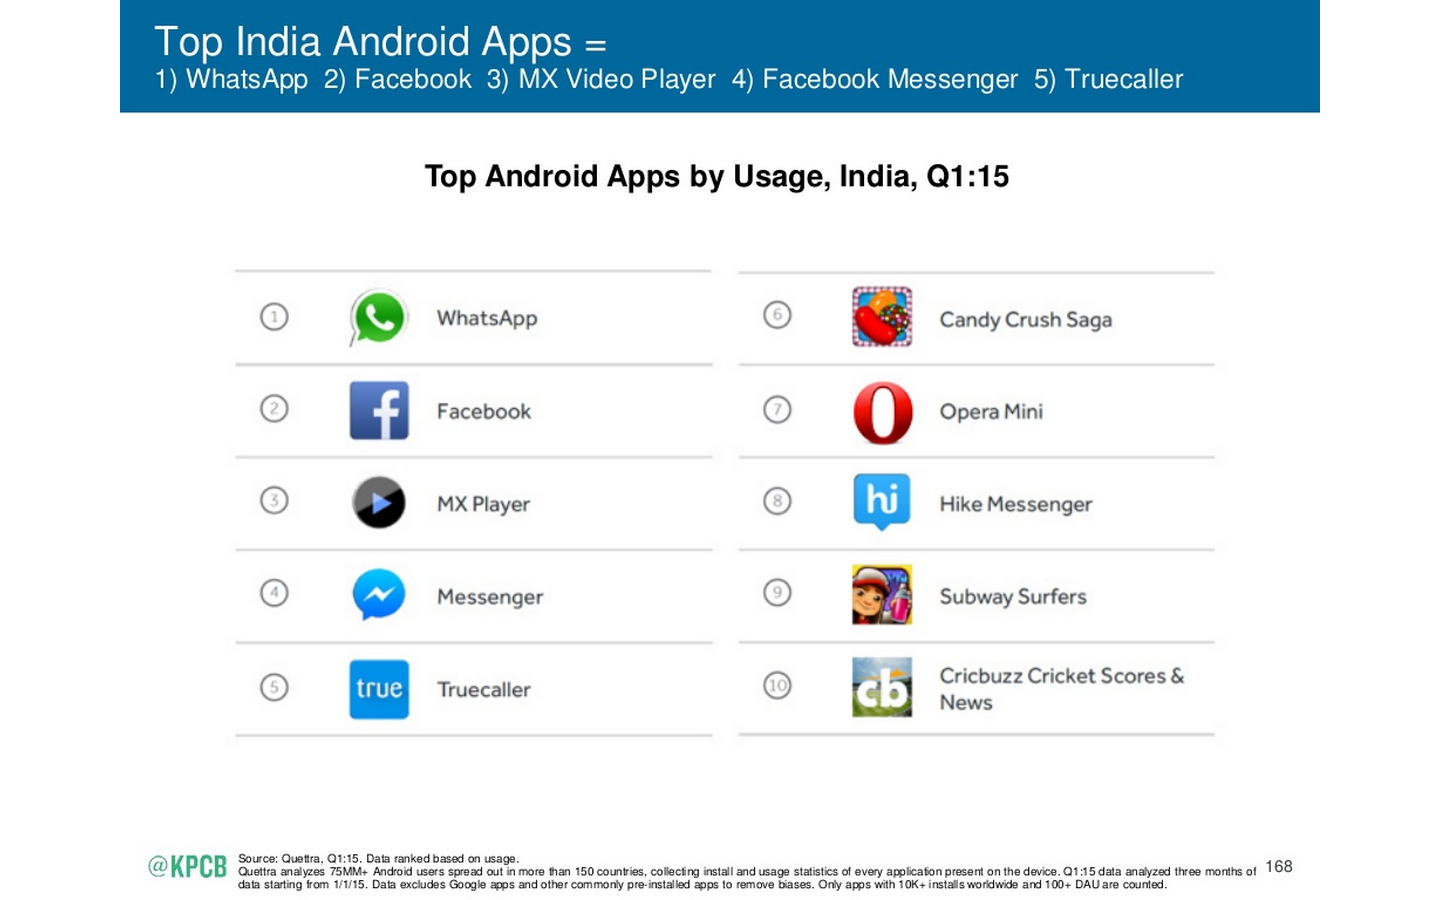 Opera Mini among top apps in India